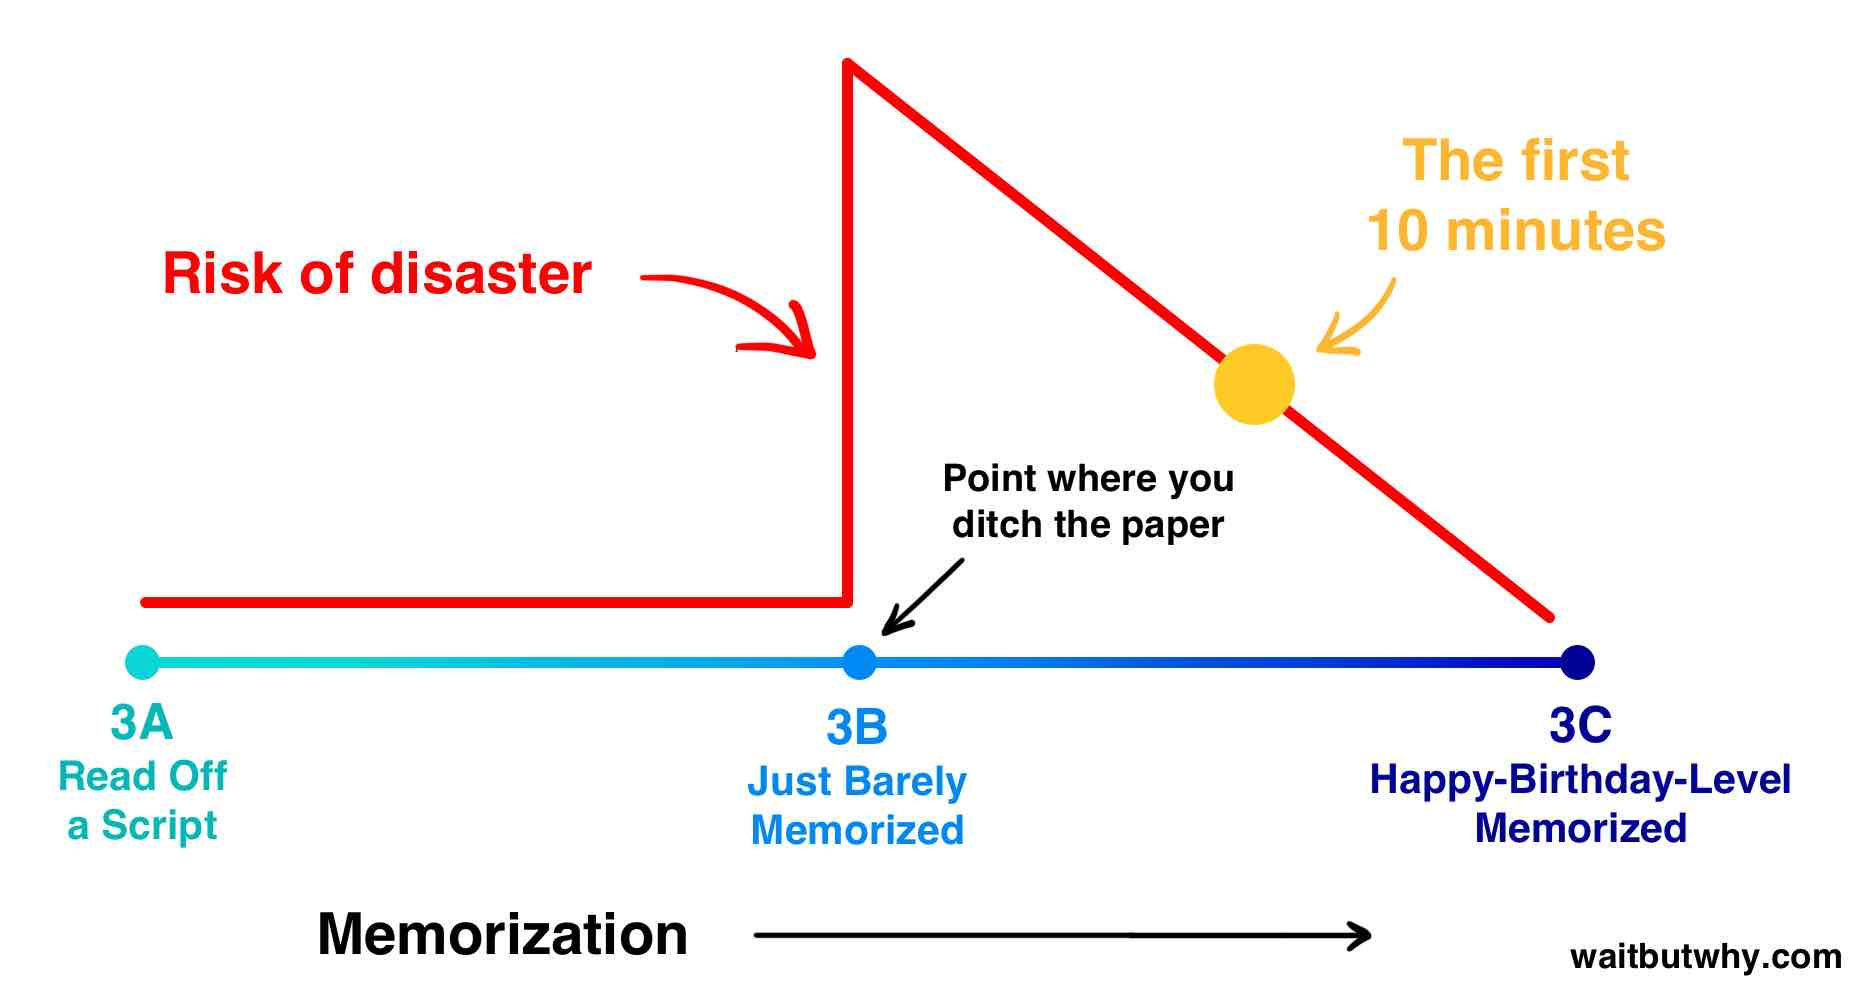 memorization spectrum with the first 10 minutes halfway between barely memorized and happy-birthday level